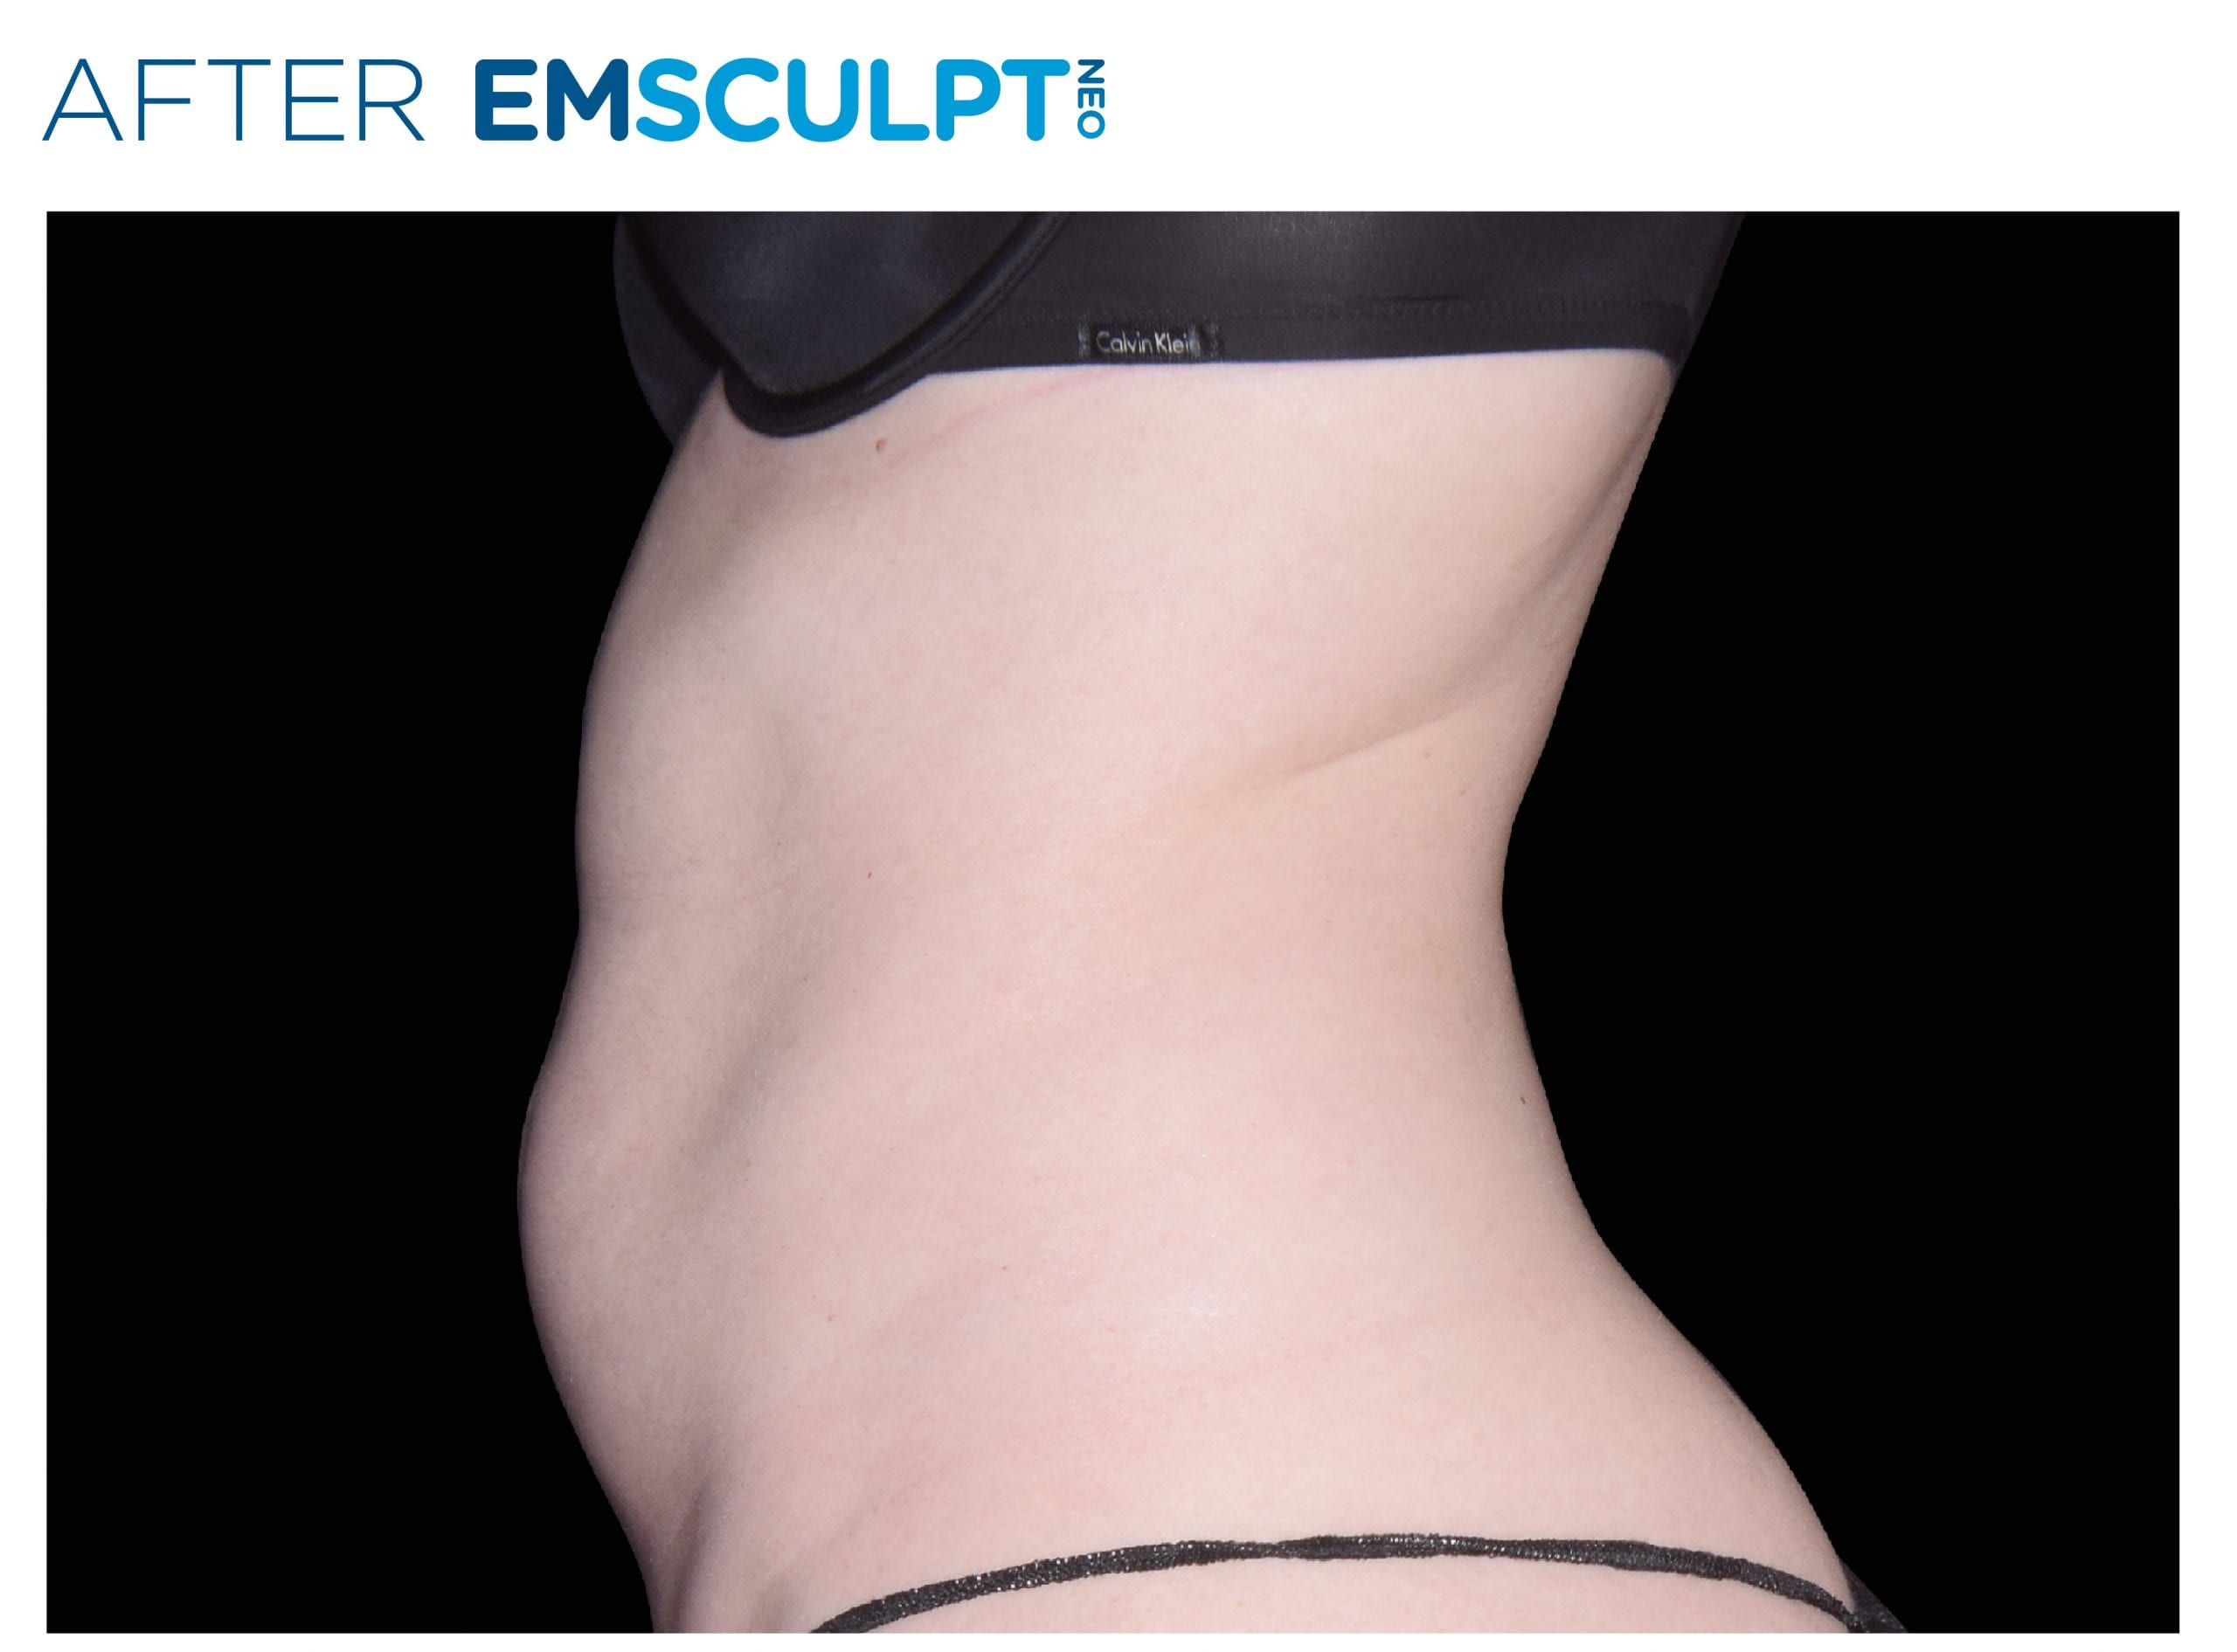 Emsculpt Neo After Treatment photo woman side view